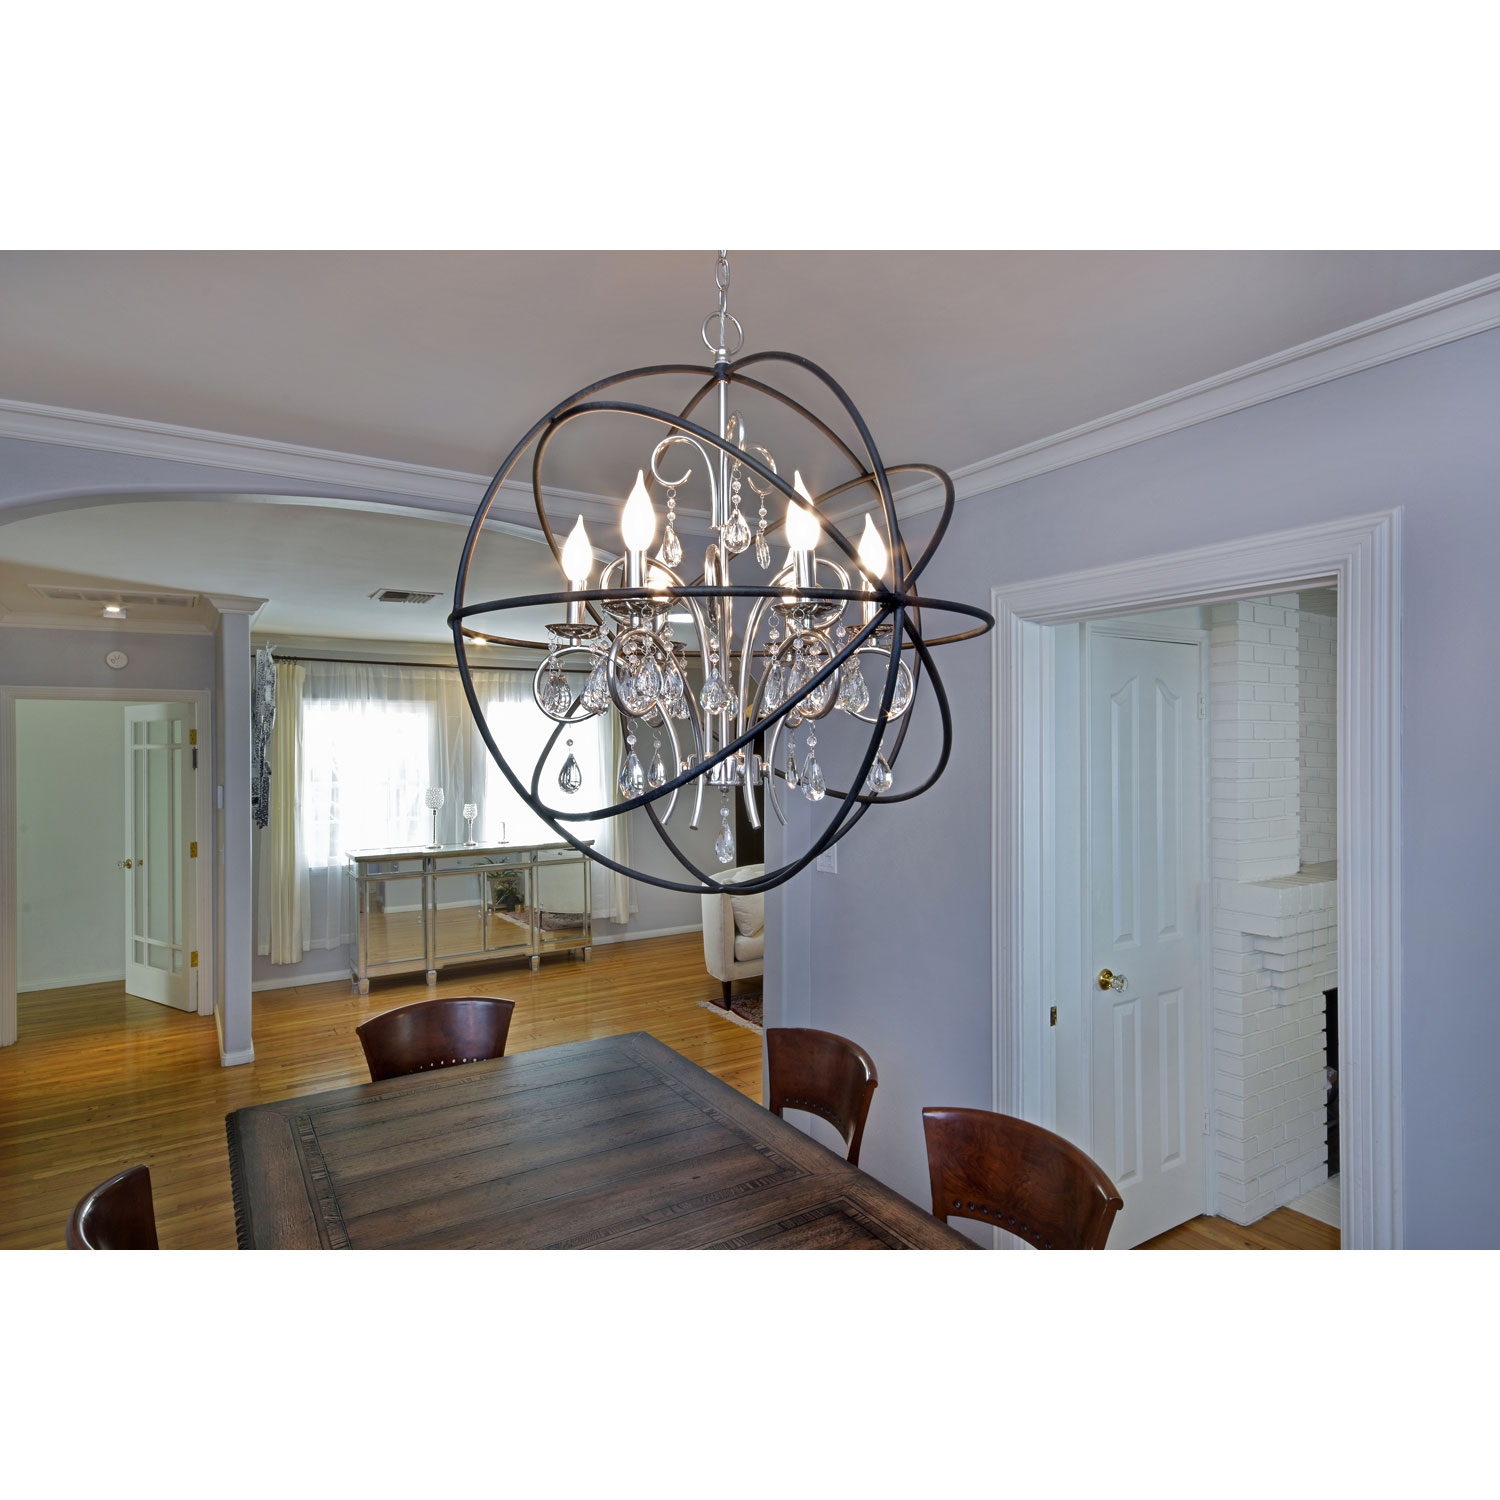 Elegant unique design of orbit chandelier with iron or stainless for ceiling lighting decorating ideas